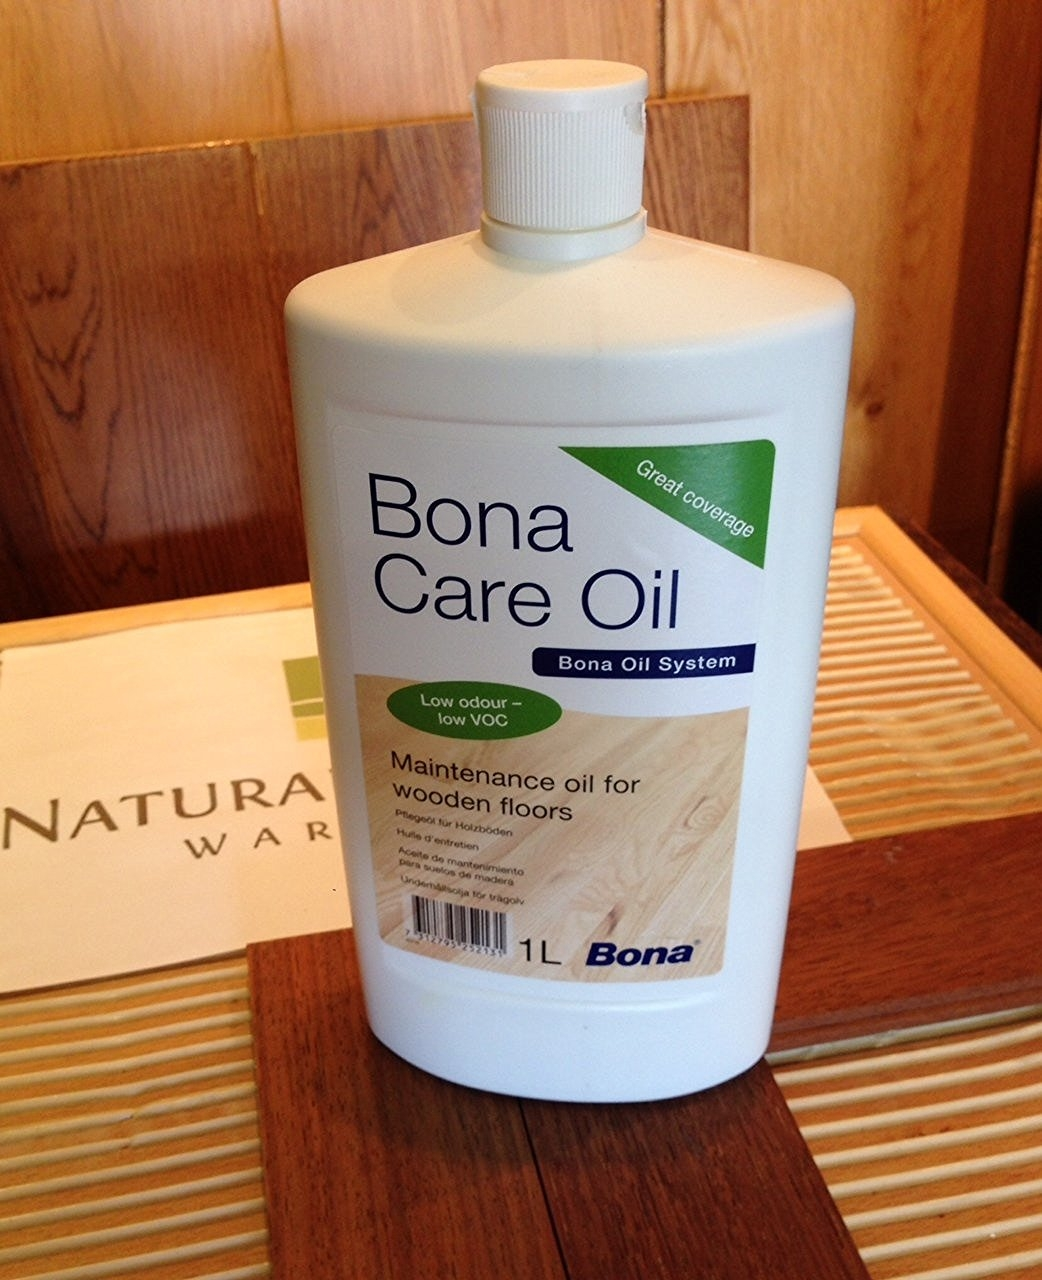 Bona Carl'S Oil For Wood Floors